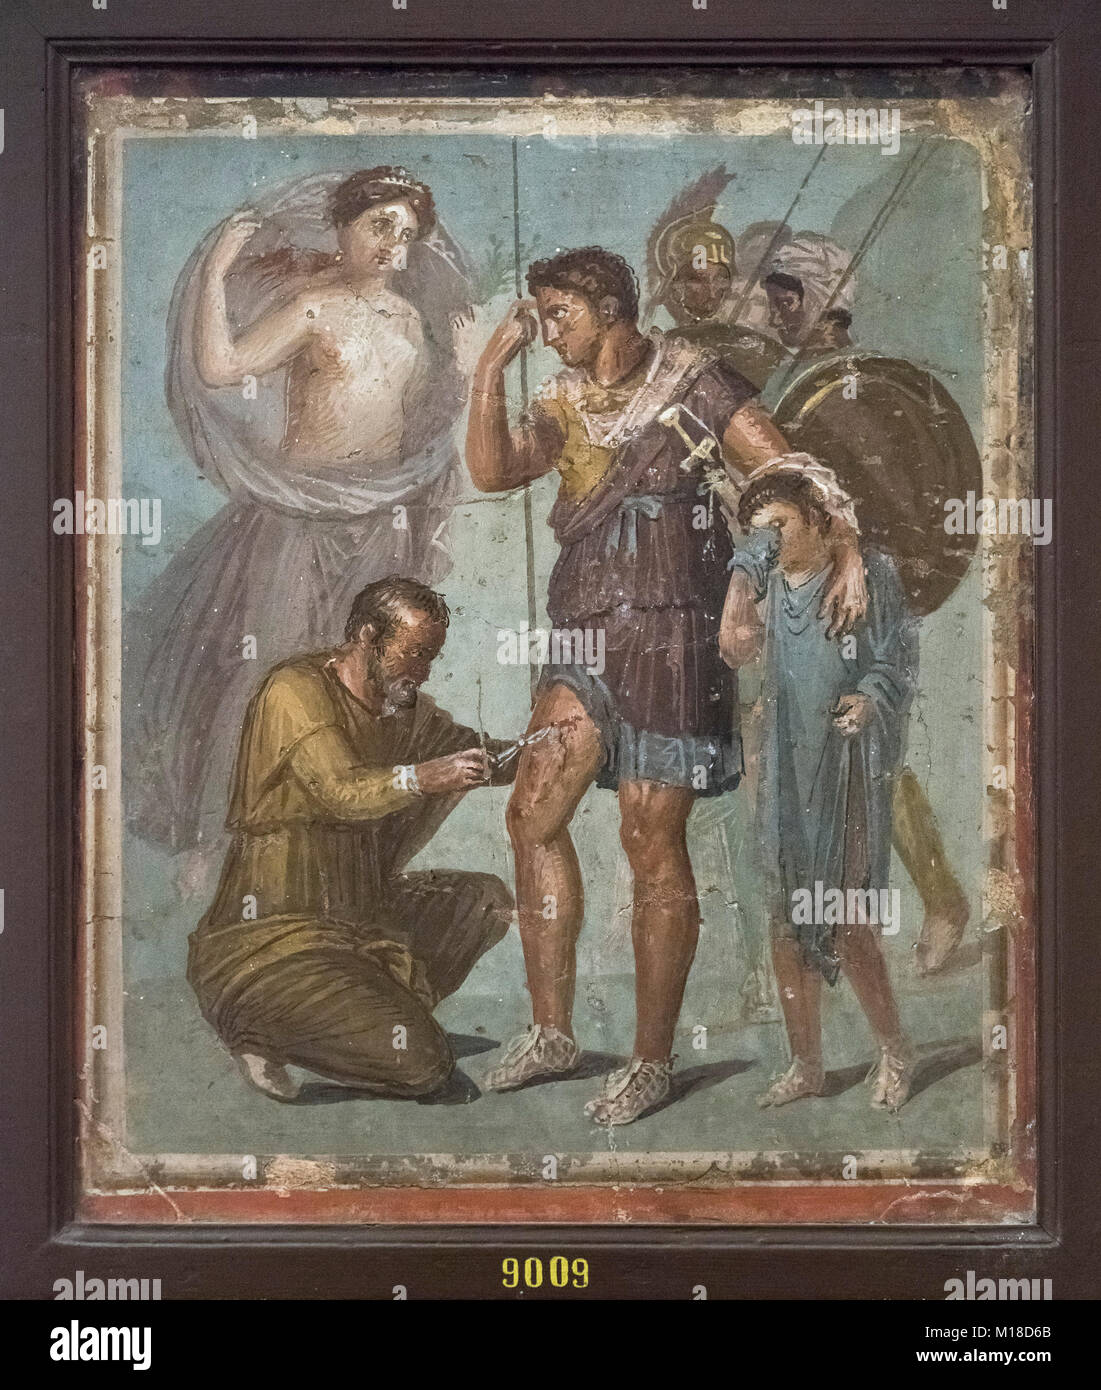 Naples. Italy. Wounded Aeneas is treated by surgeon Japix, fresco from Pompeii. Museo Archeologico Nazionale di - Stock Image